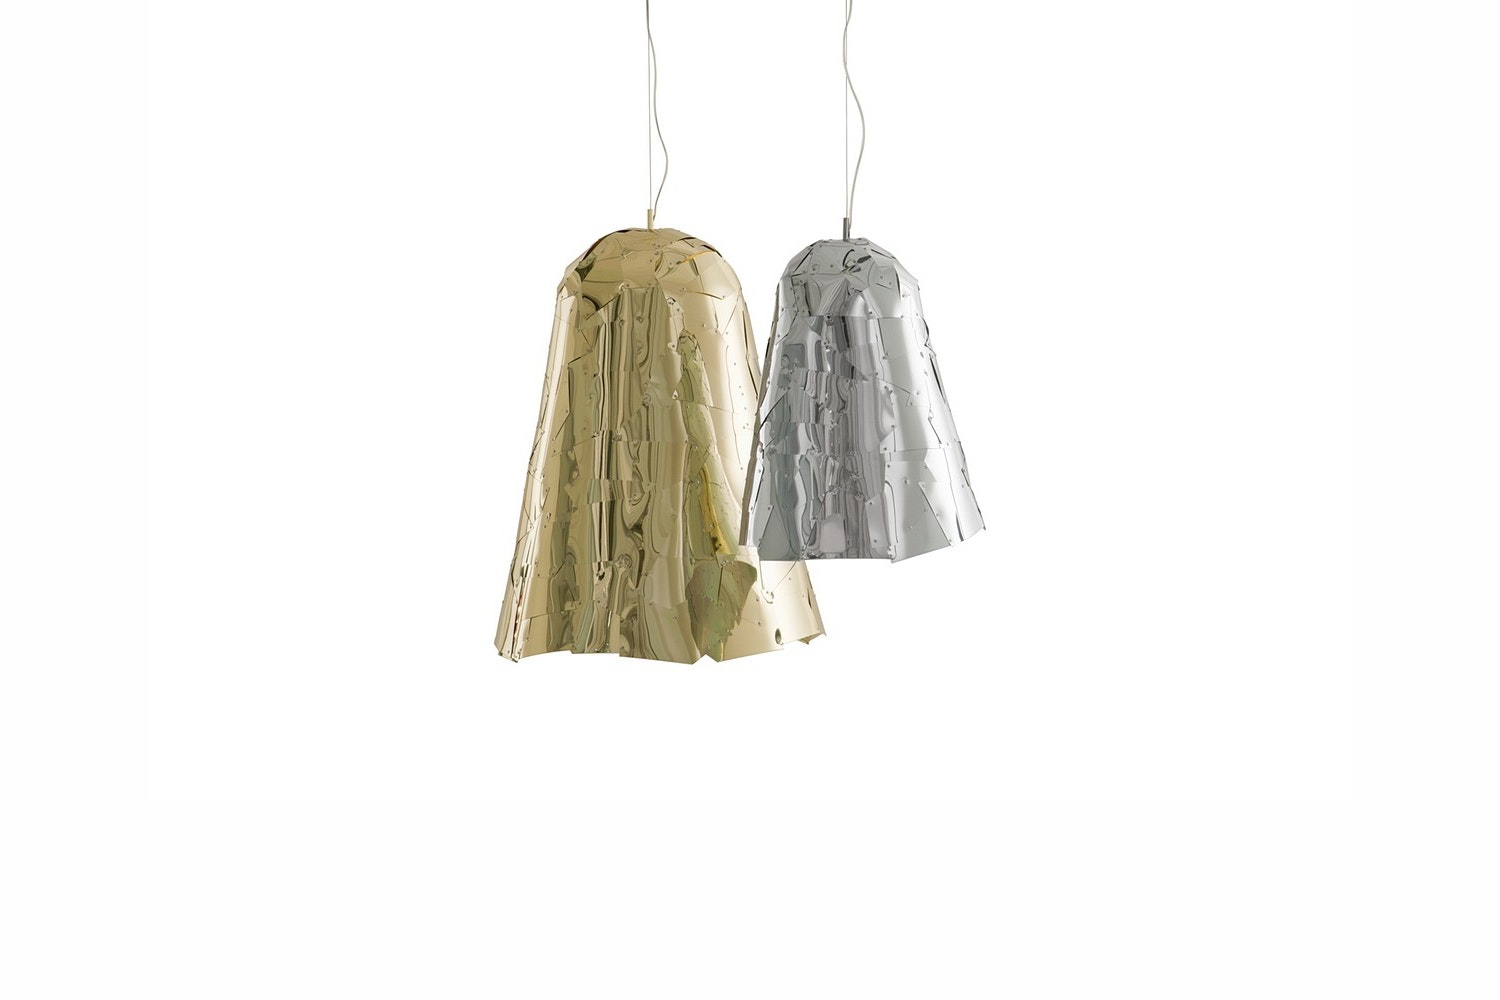 Campana Large Suspension Lamp by F. e H. Campana for Edra